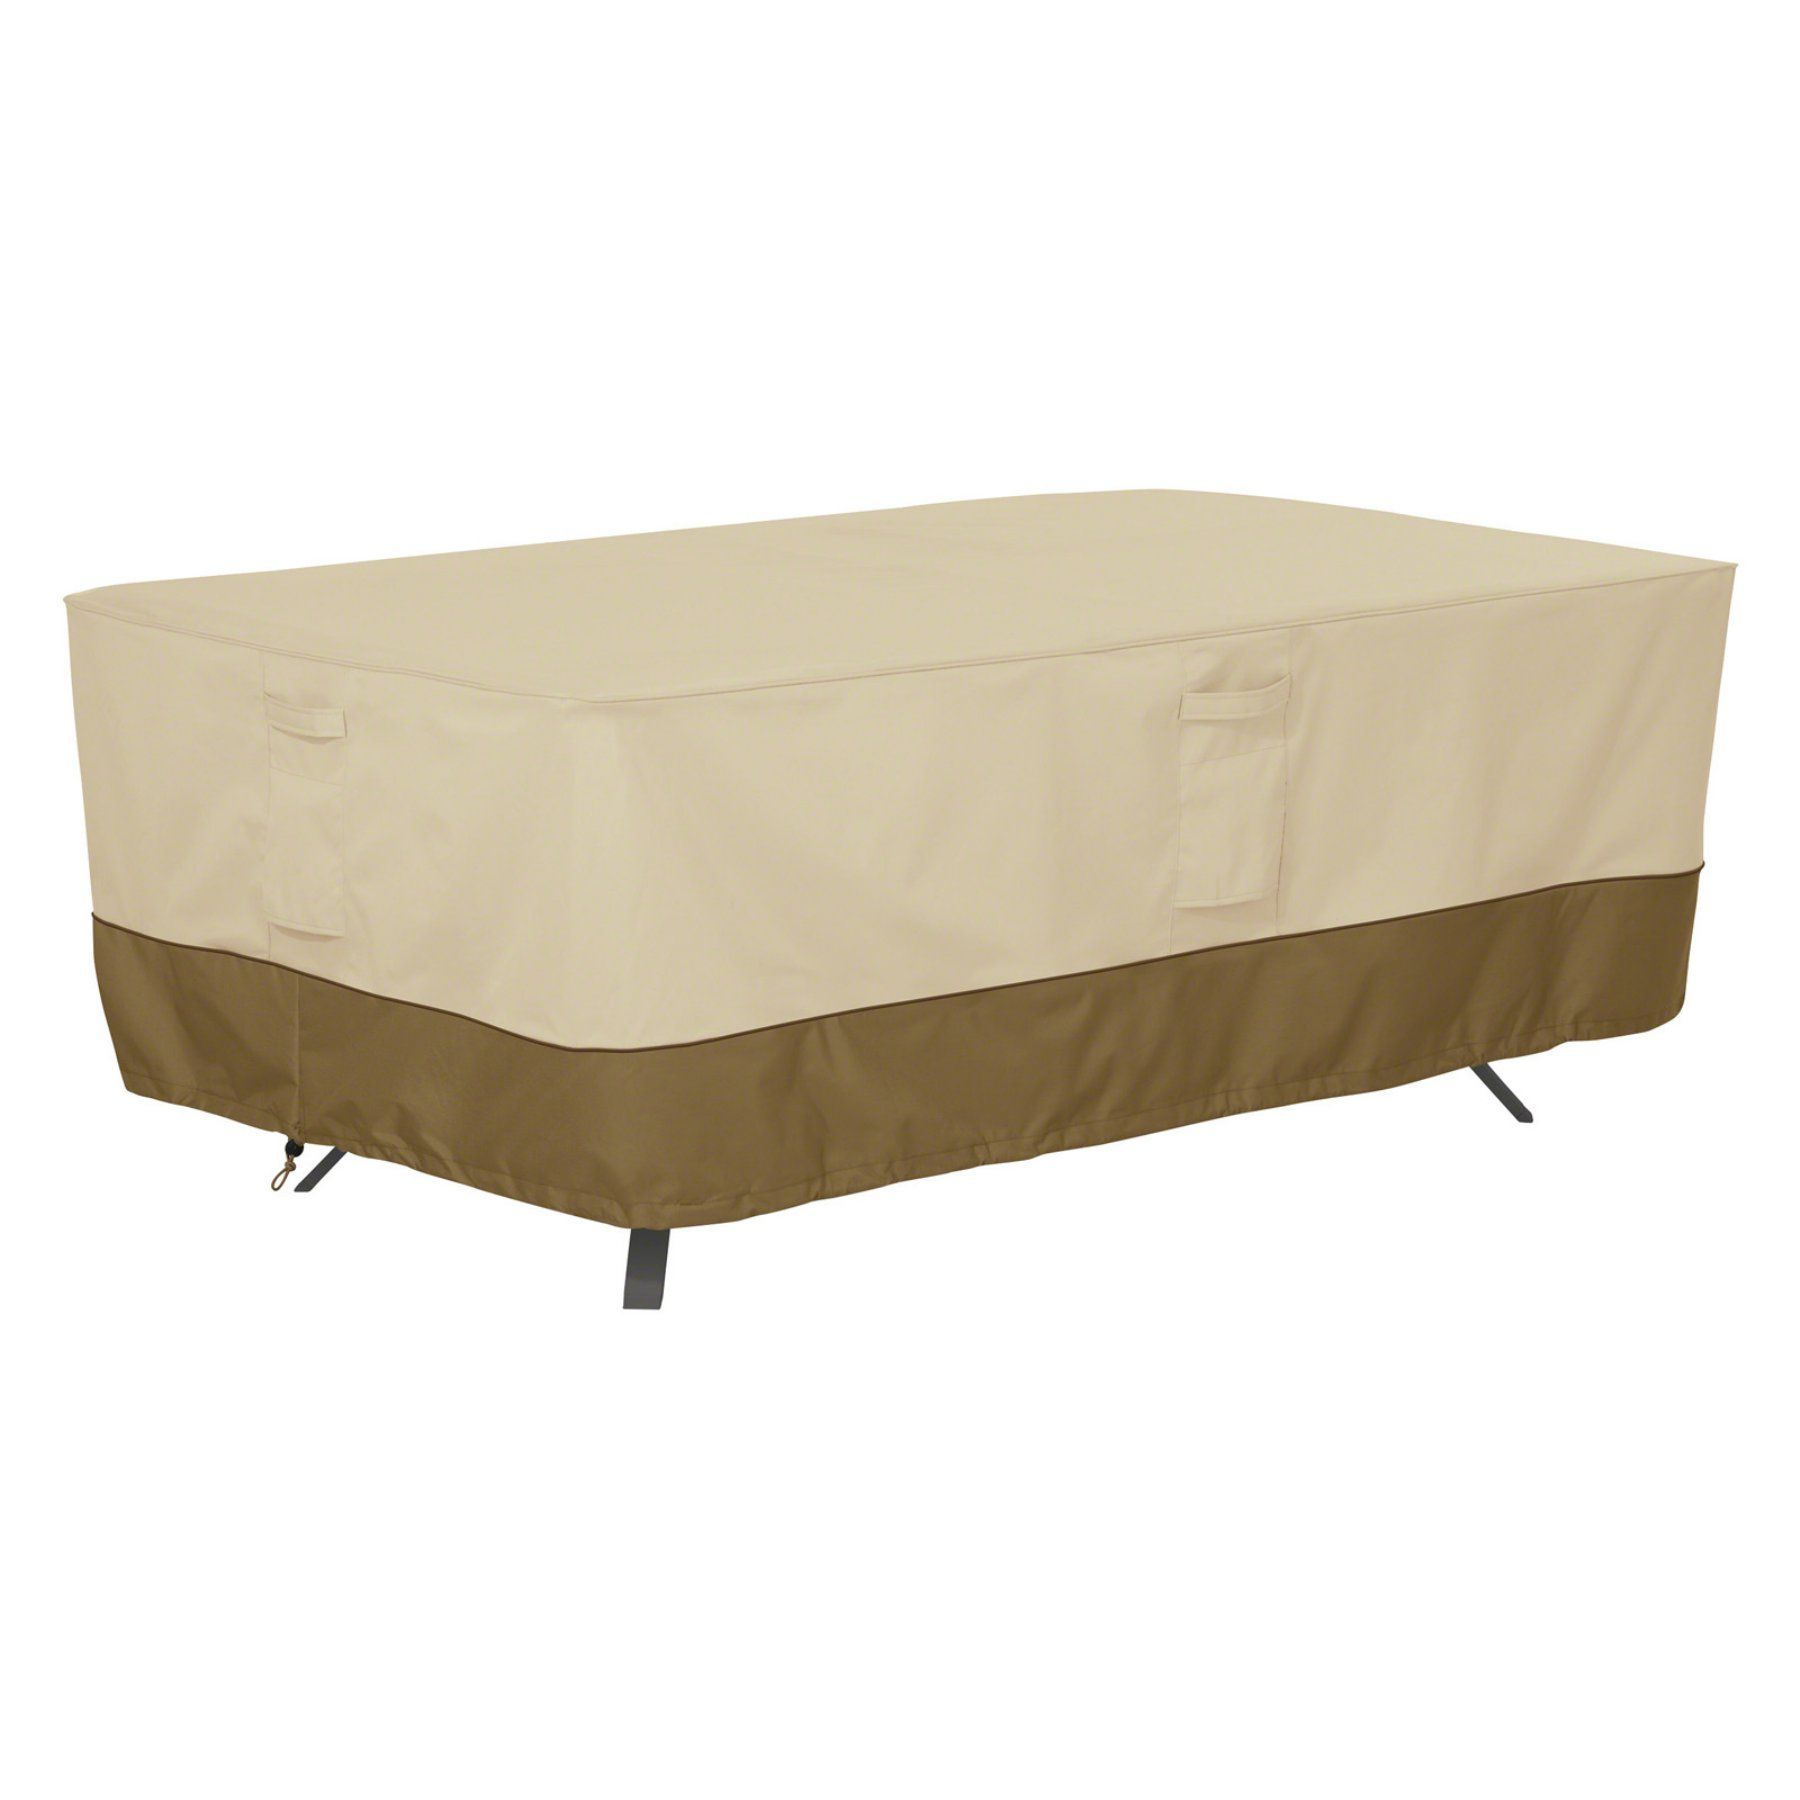 Classic Accessories Veranda Rectangle Oval Patio Table Cover 55 564 011501 00 Patio Furniture Covers Outdoor Furniture Covers Patio Table